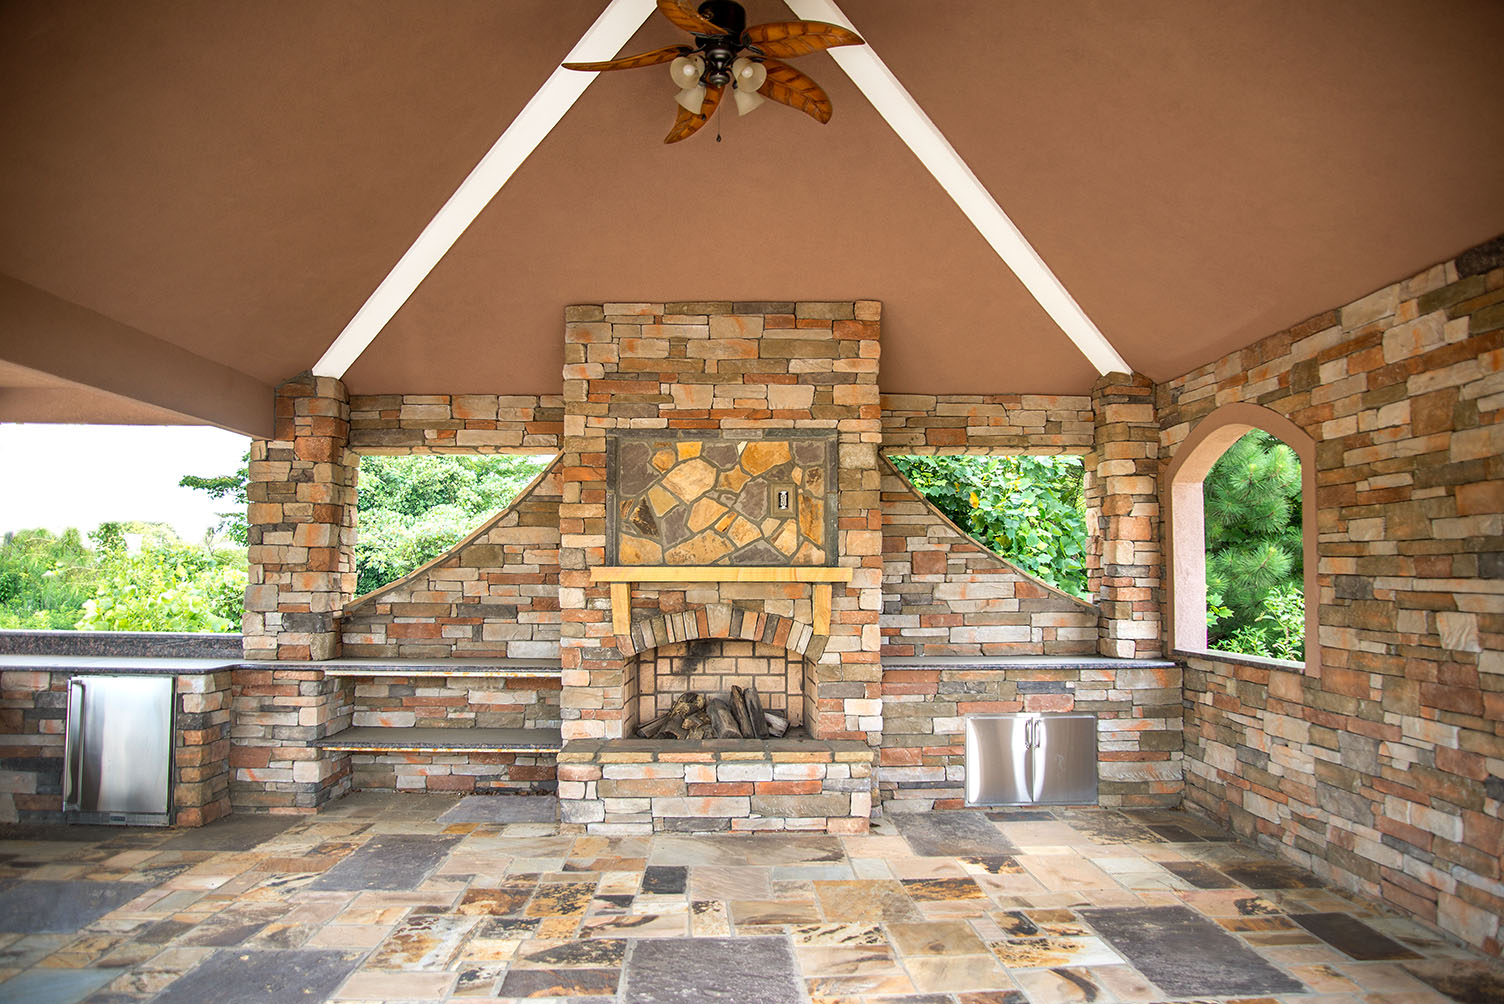 Outdoor Image Galleries for Inspiration on Covered Outdoor Living Area id=33662